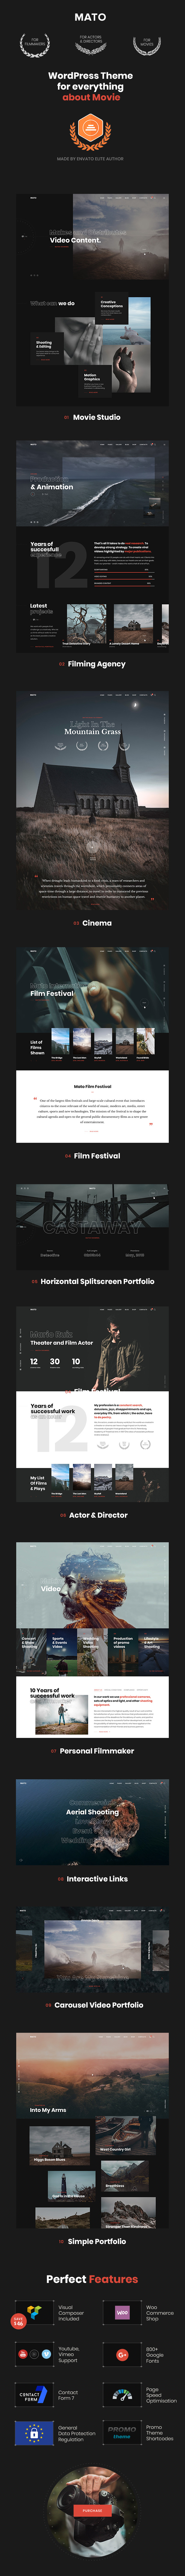 Mato | Movie Studios and Filmmakers WordPress Theme - 4